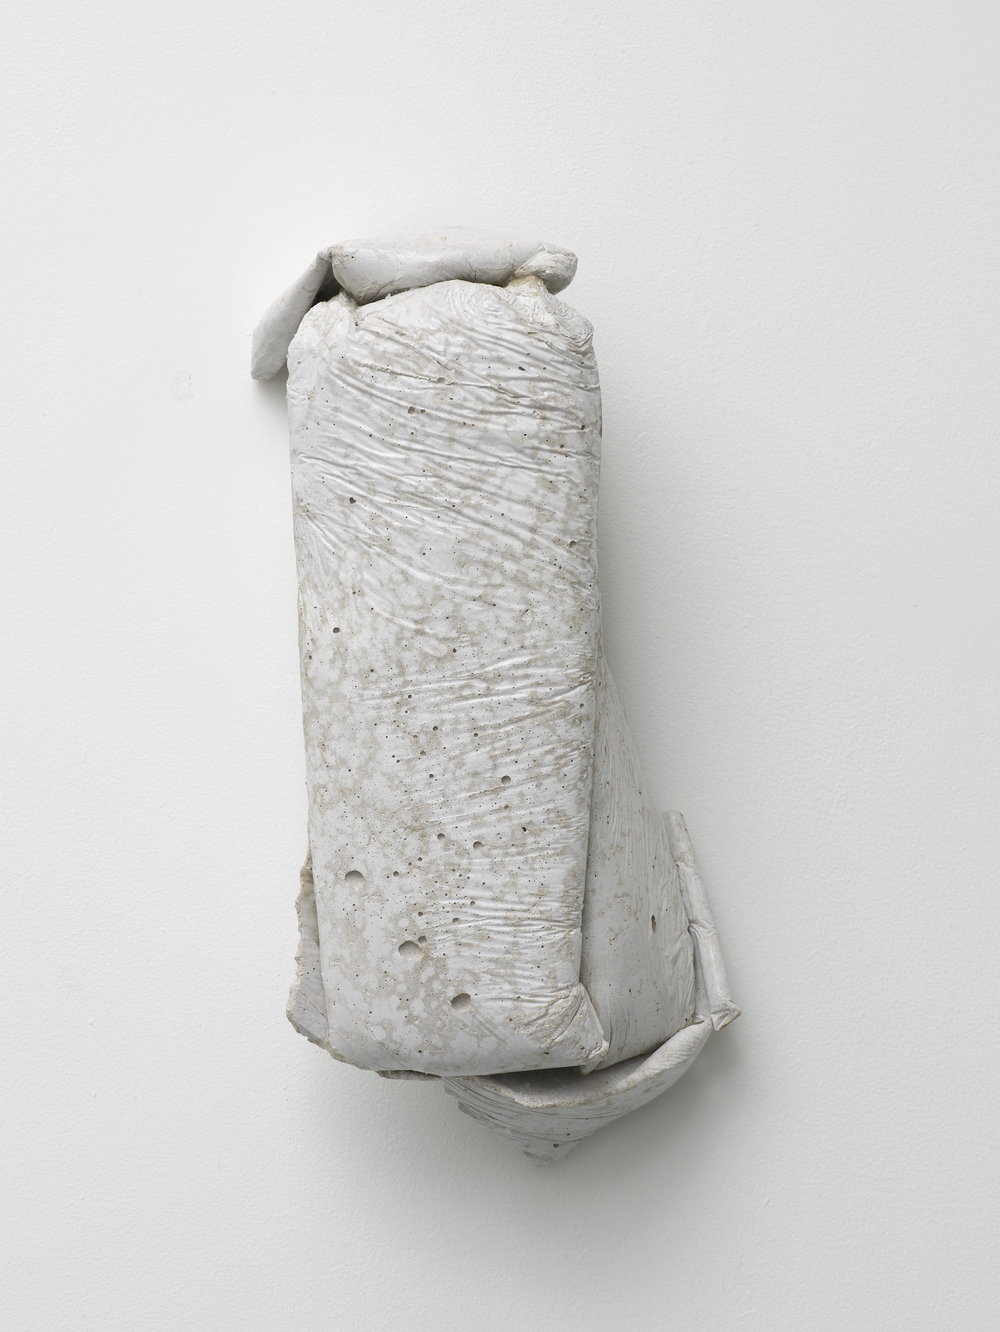 nhnhnh (Working Title)  2014 Concrete, glue 32 x 16 x 10 cm / 12.5 x 6.2 x 3.9 in